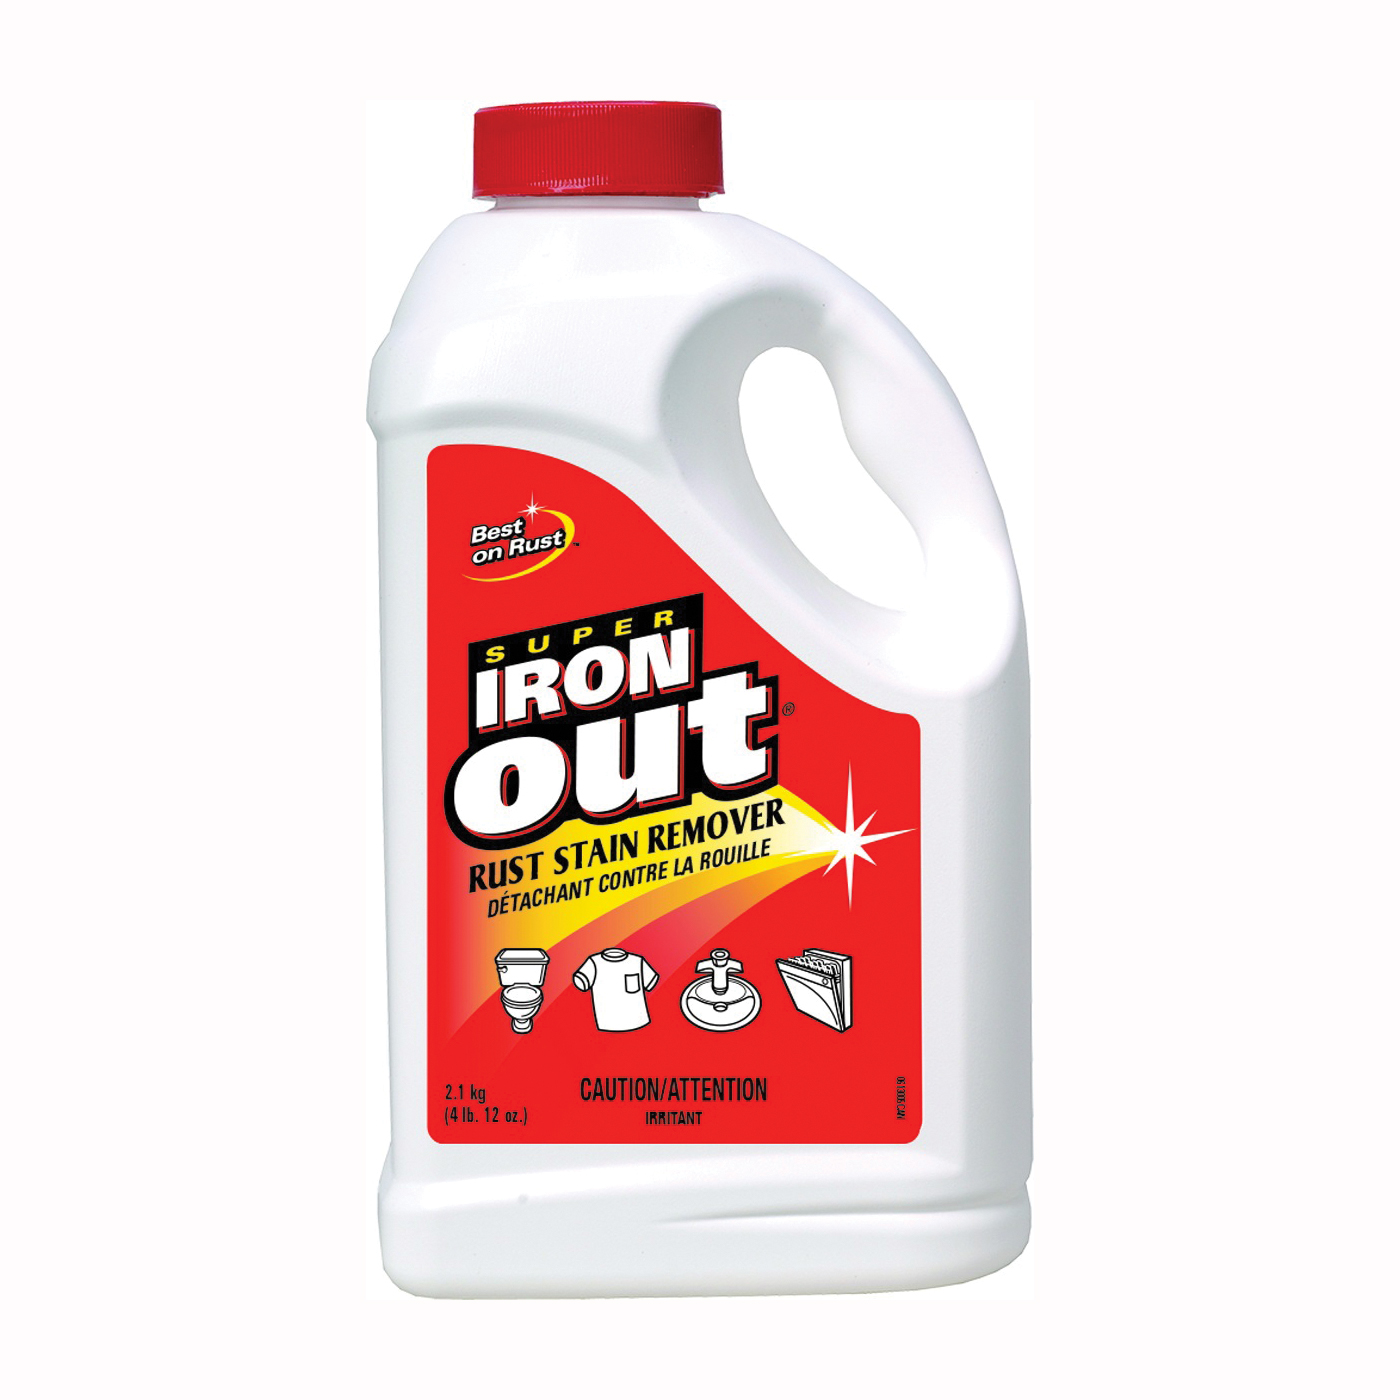 Picture of IRON OUT C-IO65N Stain Remover, 2.1 kg Package, Bottle, Powder, Mint